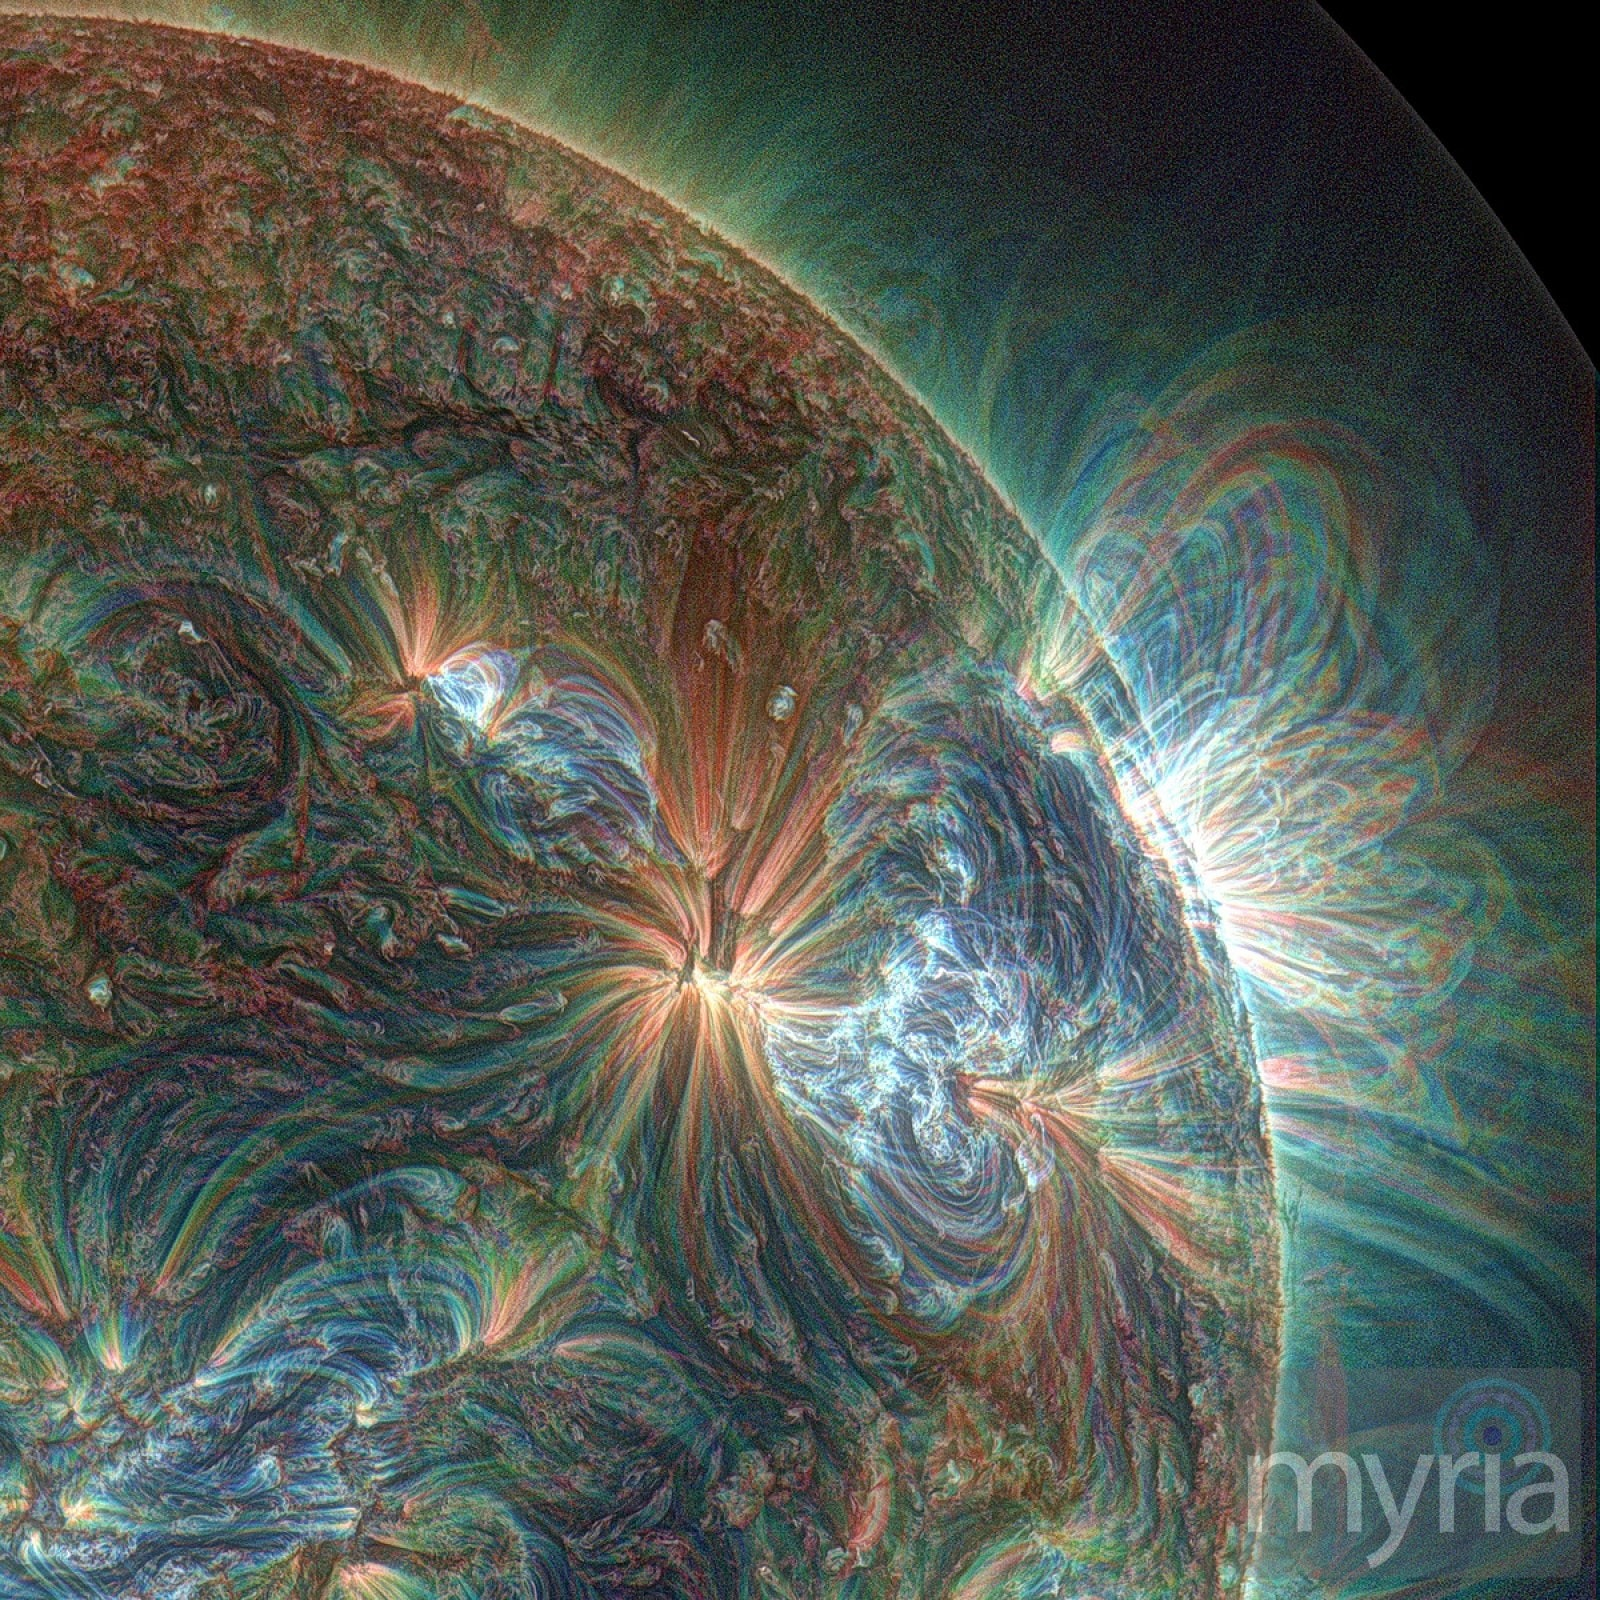 Puffing sun gives birth to reluctant eruption